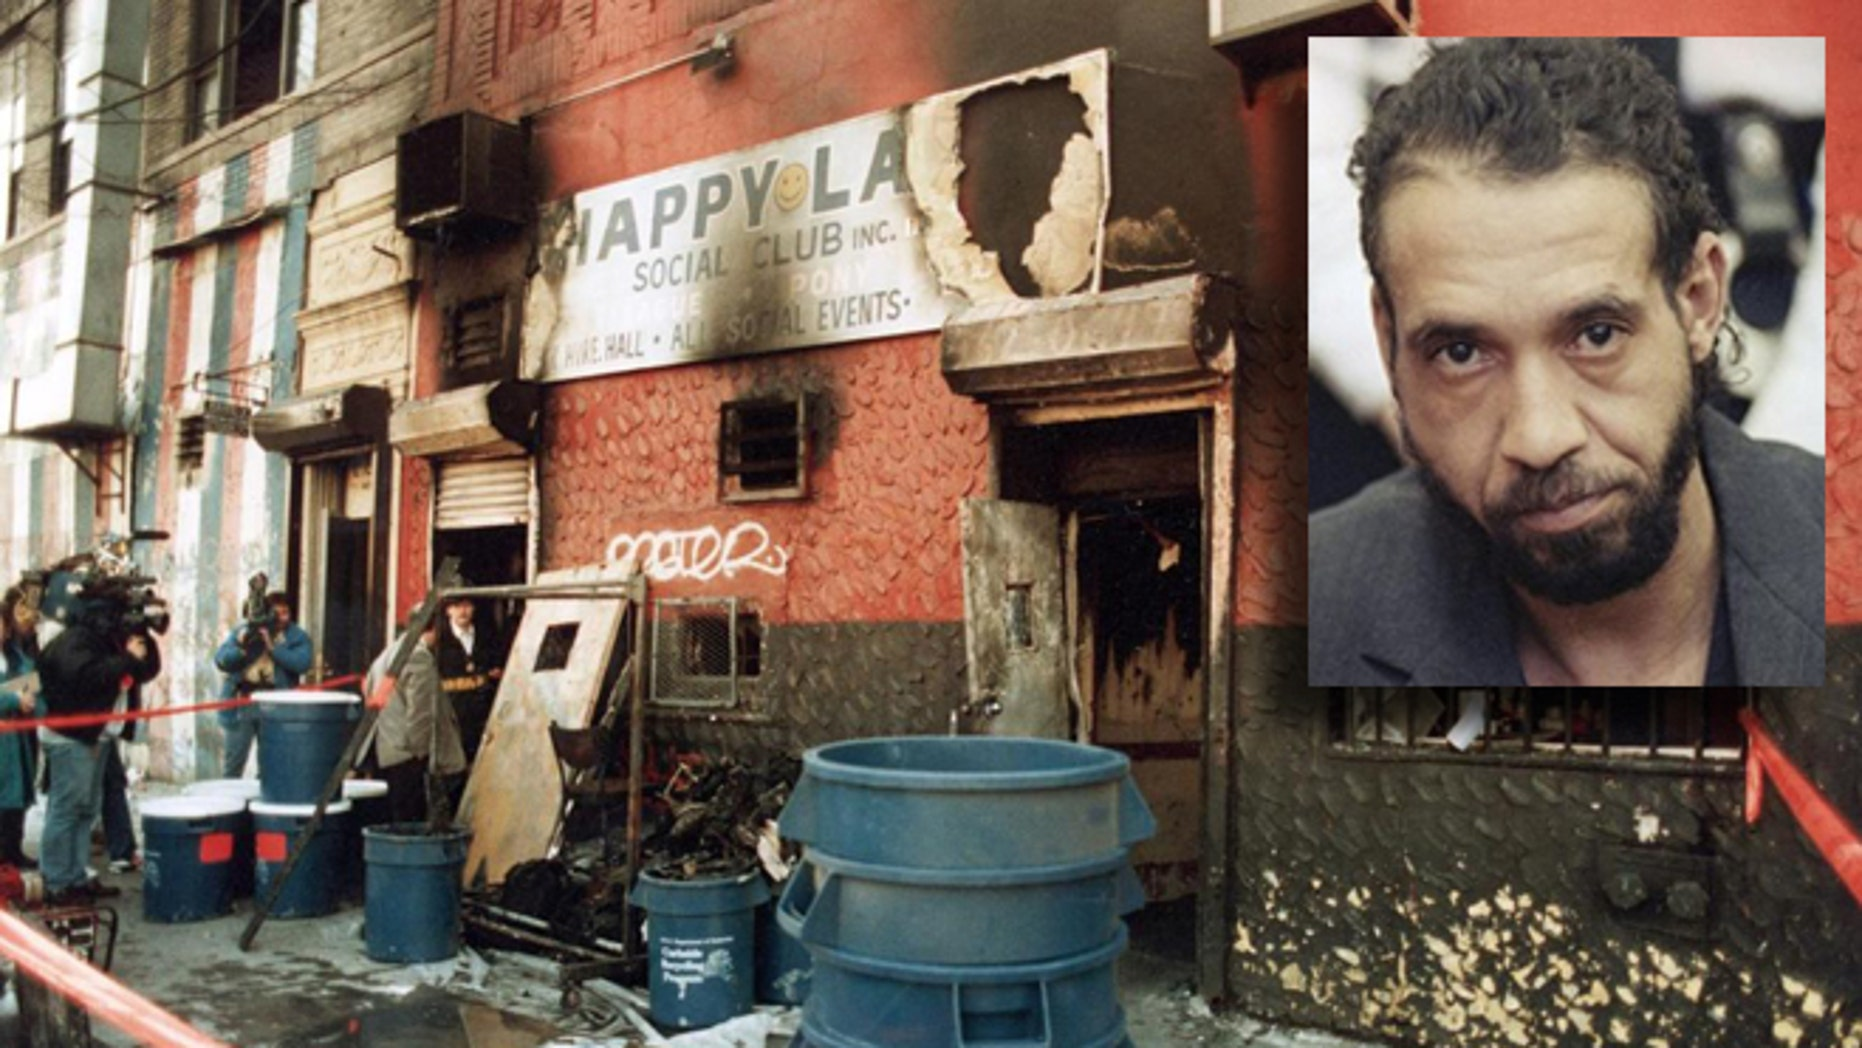 The Happy Land Social Club in the Bronx, N.Y., after the fire. Inset: Julio Gonzalez.